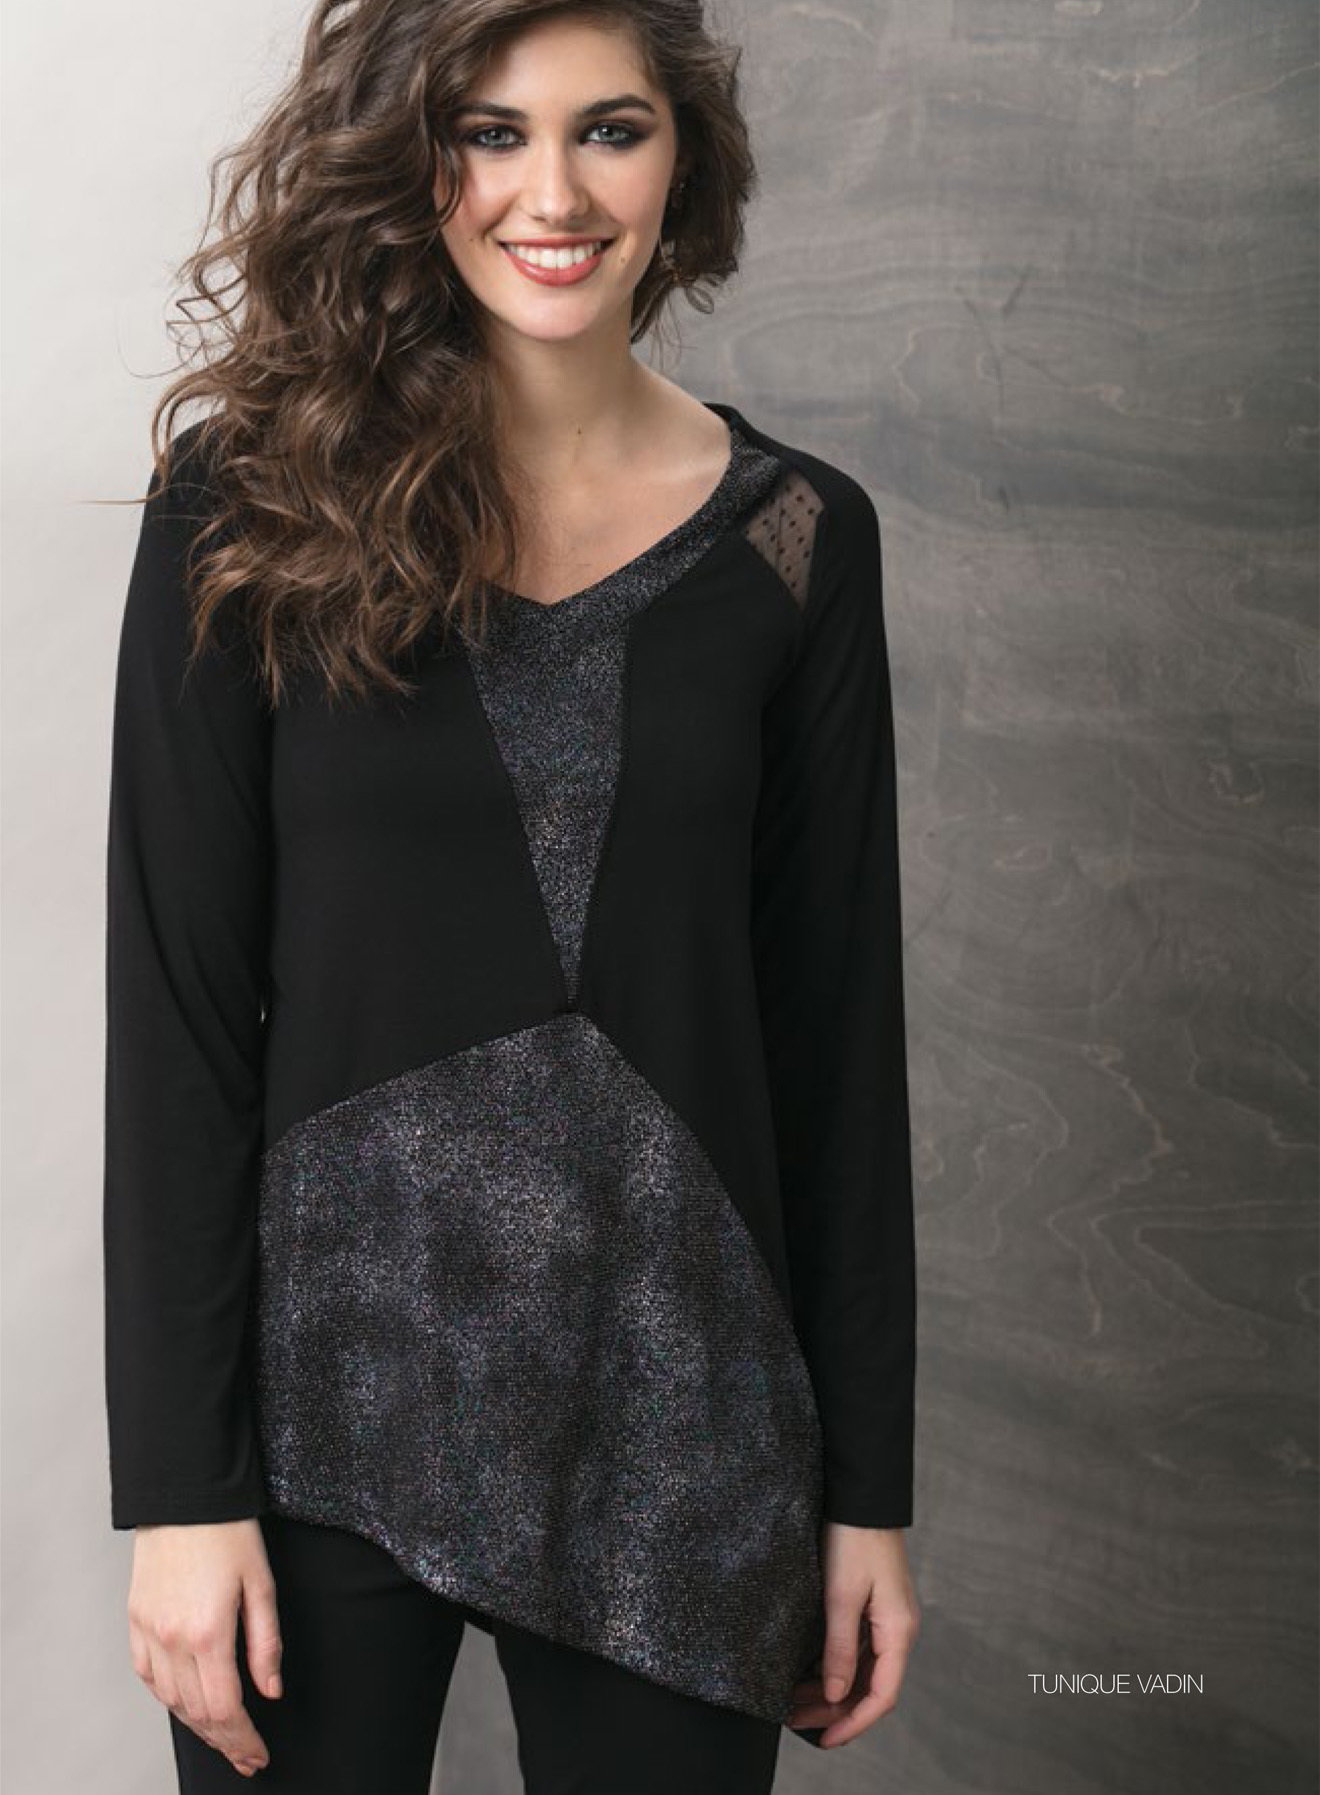 Maloka: Starry Night Asymmetrical Tunic (1 Left!) MK_VADIM